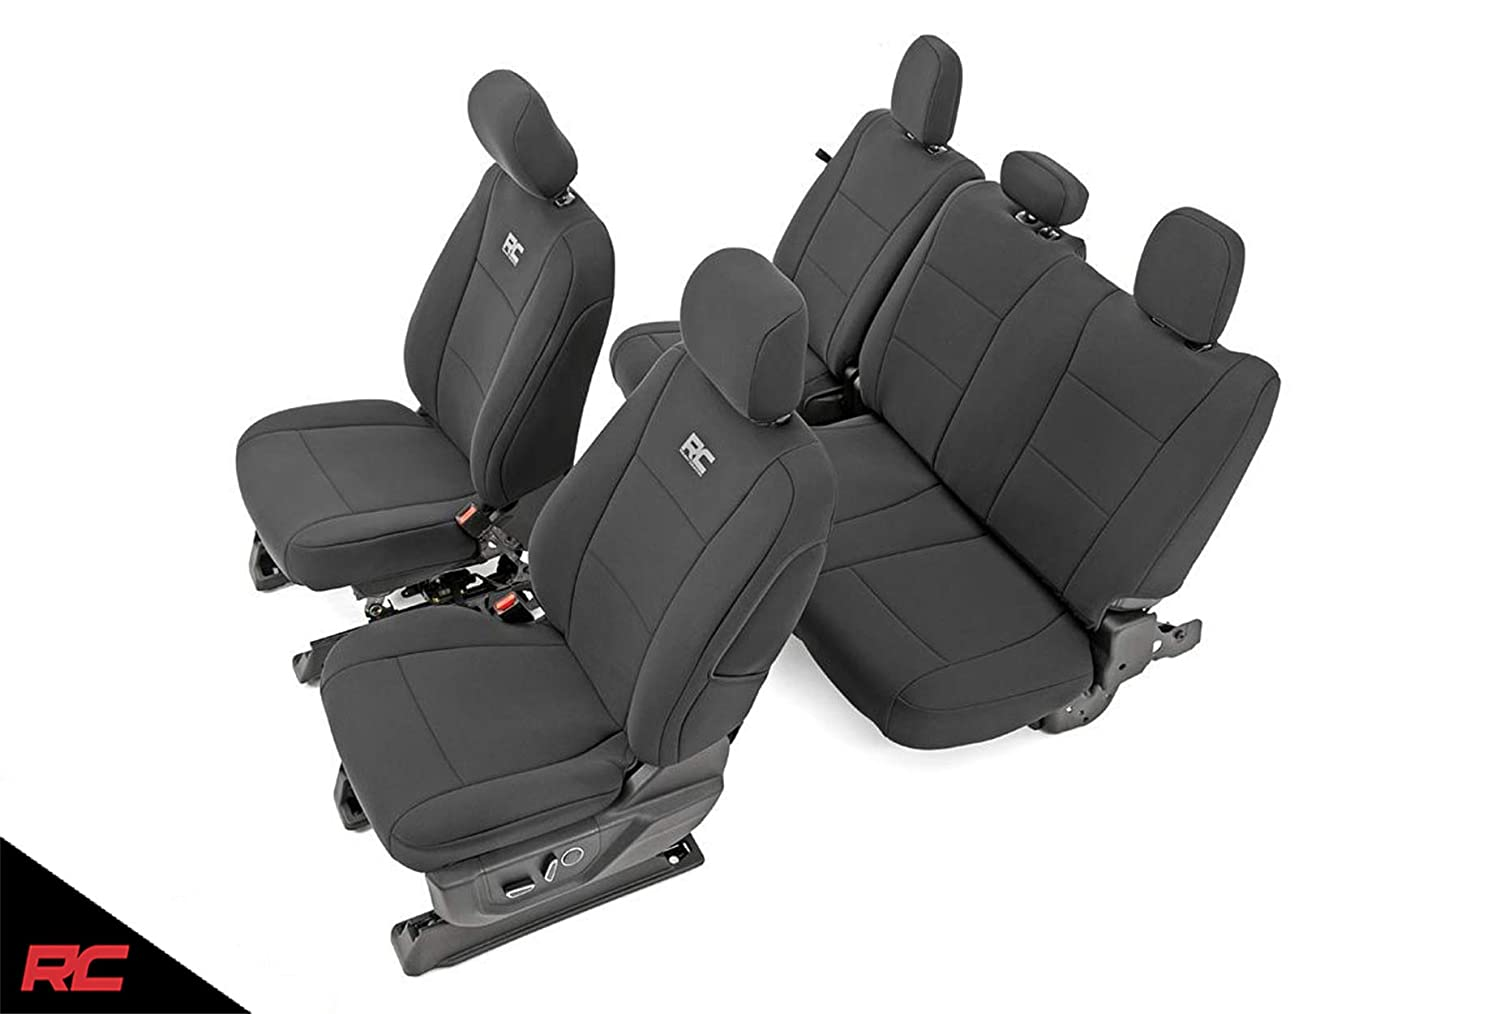 Rough Country 91018 Neoprene Seat Covers Black Front/Rear ((fits) 2015-2019 F150 XL/XLT 1st/2nd Row Water Resistant